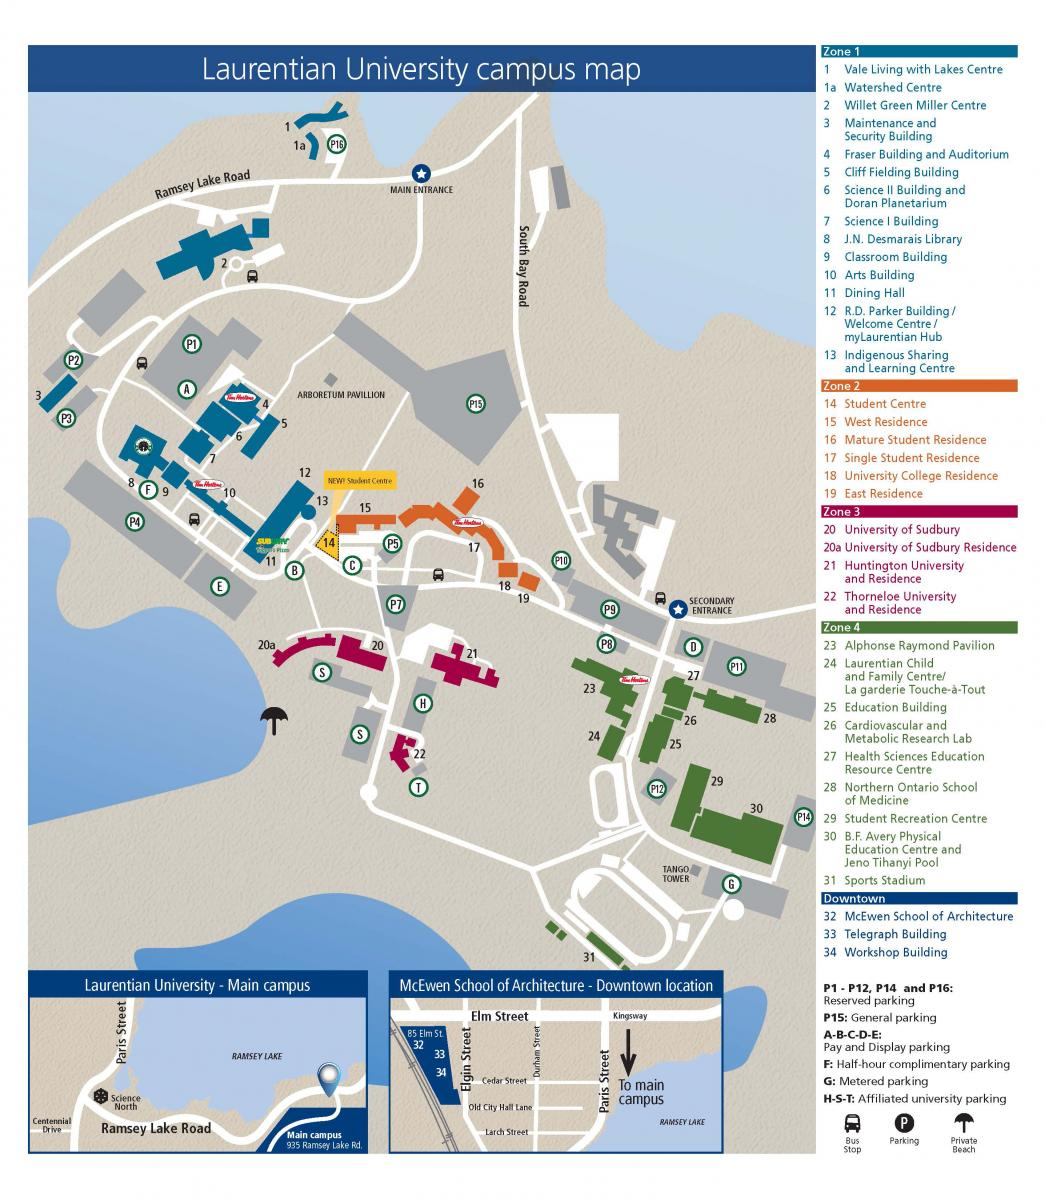 Laurentian University campus map